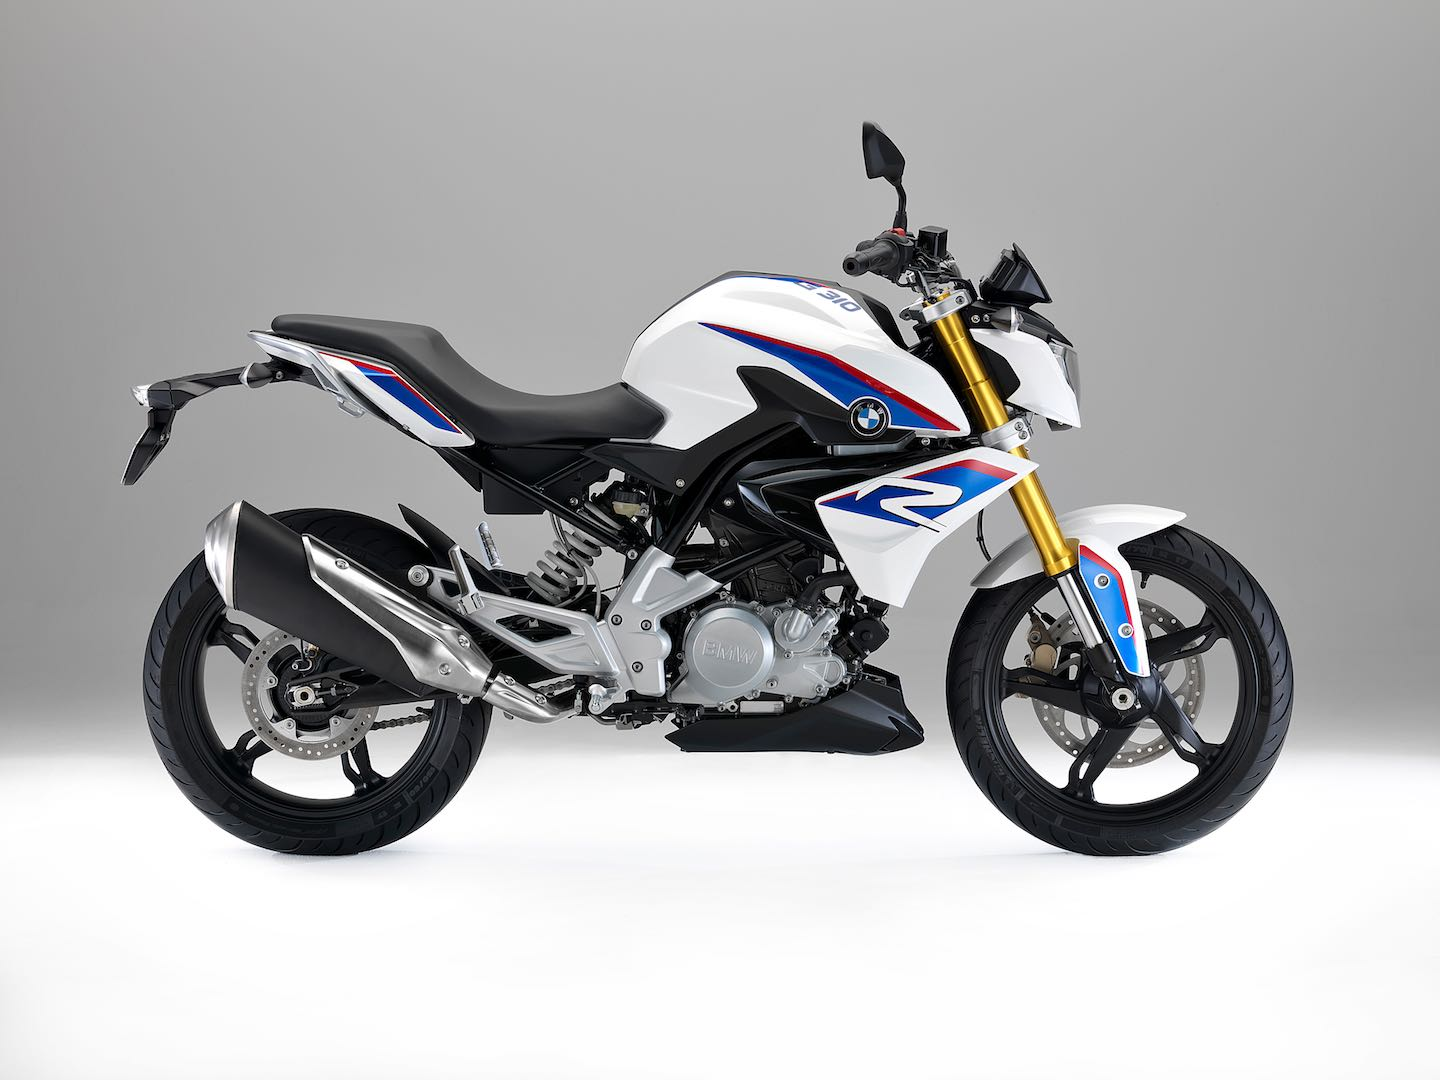 2018 bmw g 310 r buyer 39 s guide specs price. Black Bedroom Furniture Sets. Home Design Ideas